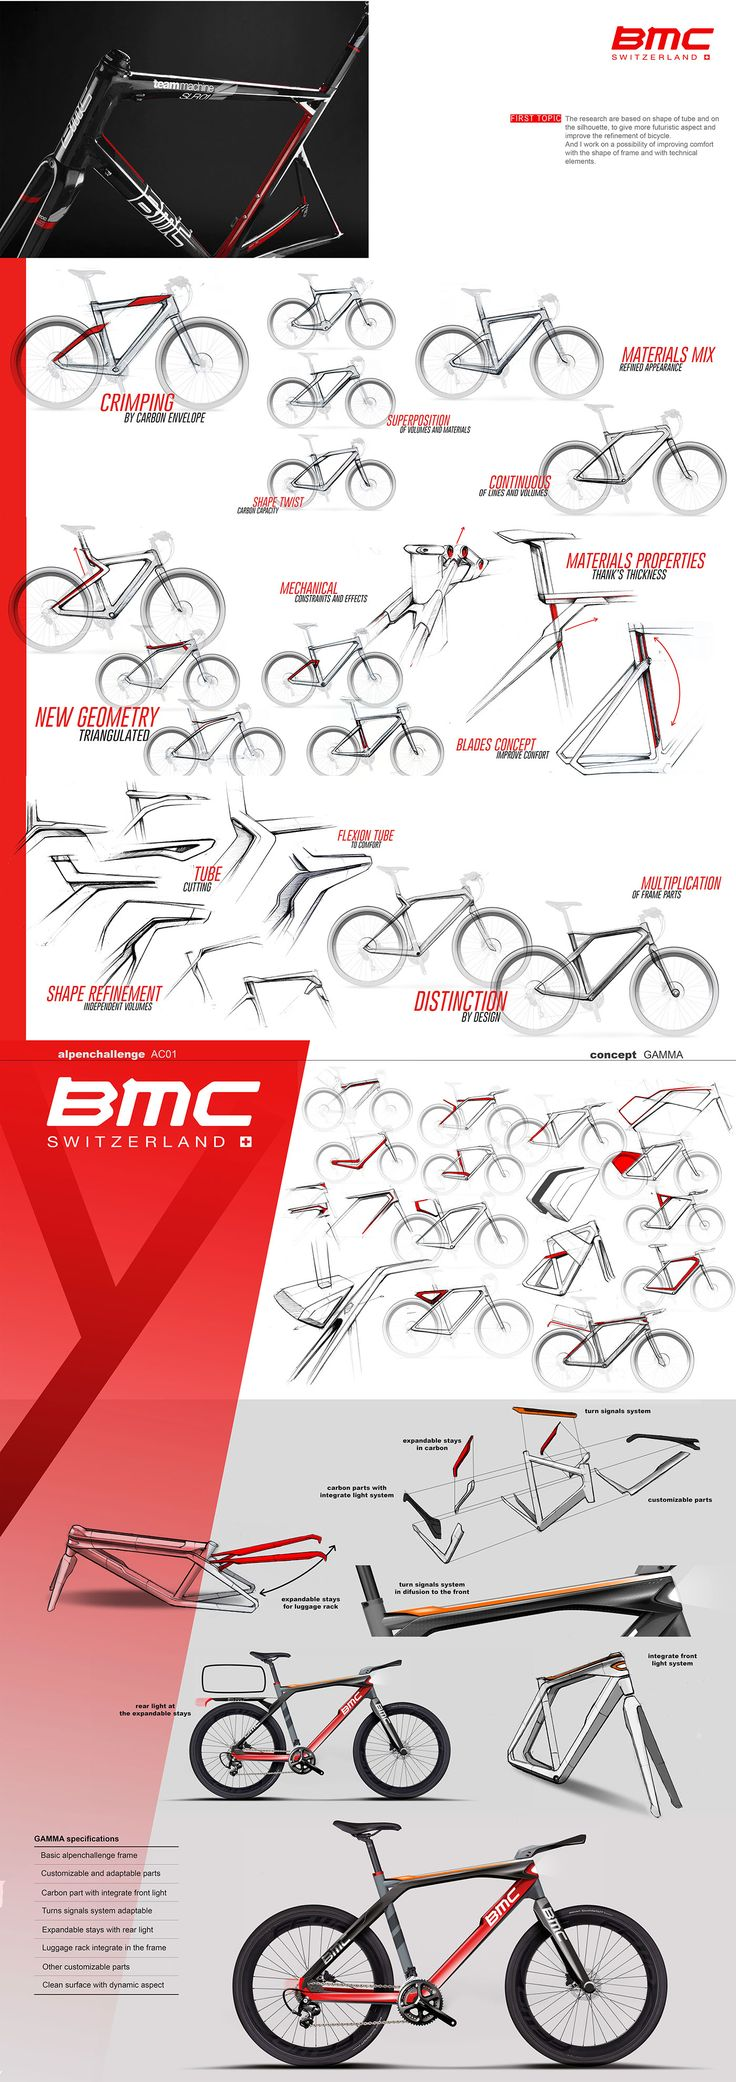 The objective is to provide a prospective design of an urban bike, based on the geometry of the BMC Alpenchallenge for upgrade its uses.